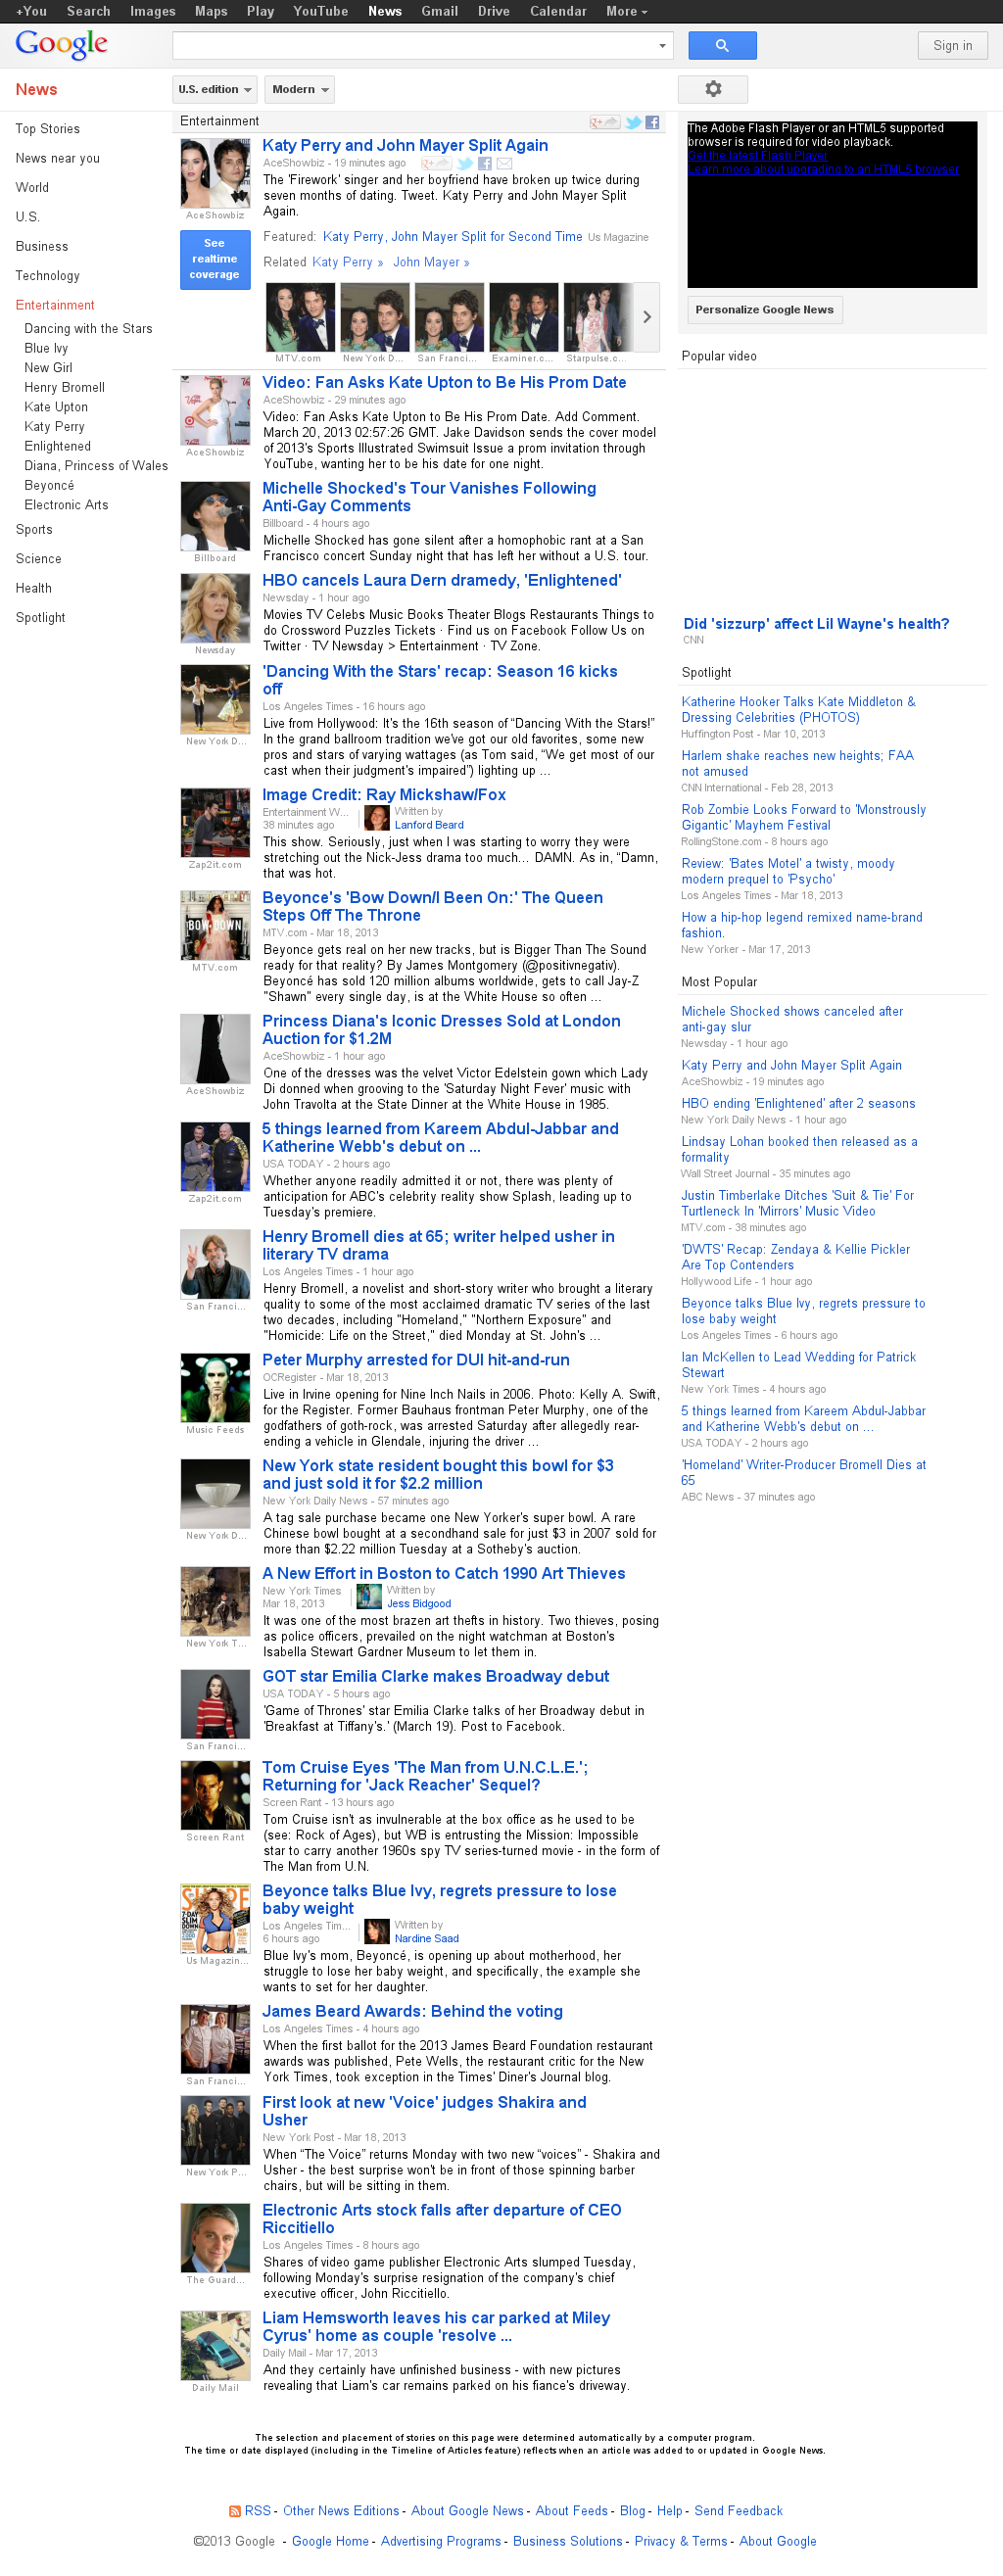 Google News: Entertainment at Wednesday March 20, 2013, 4:11 a.m. UTC